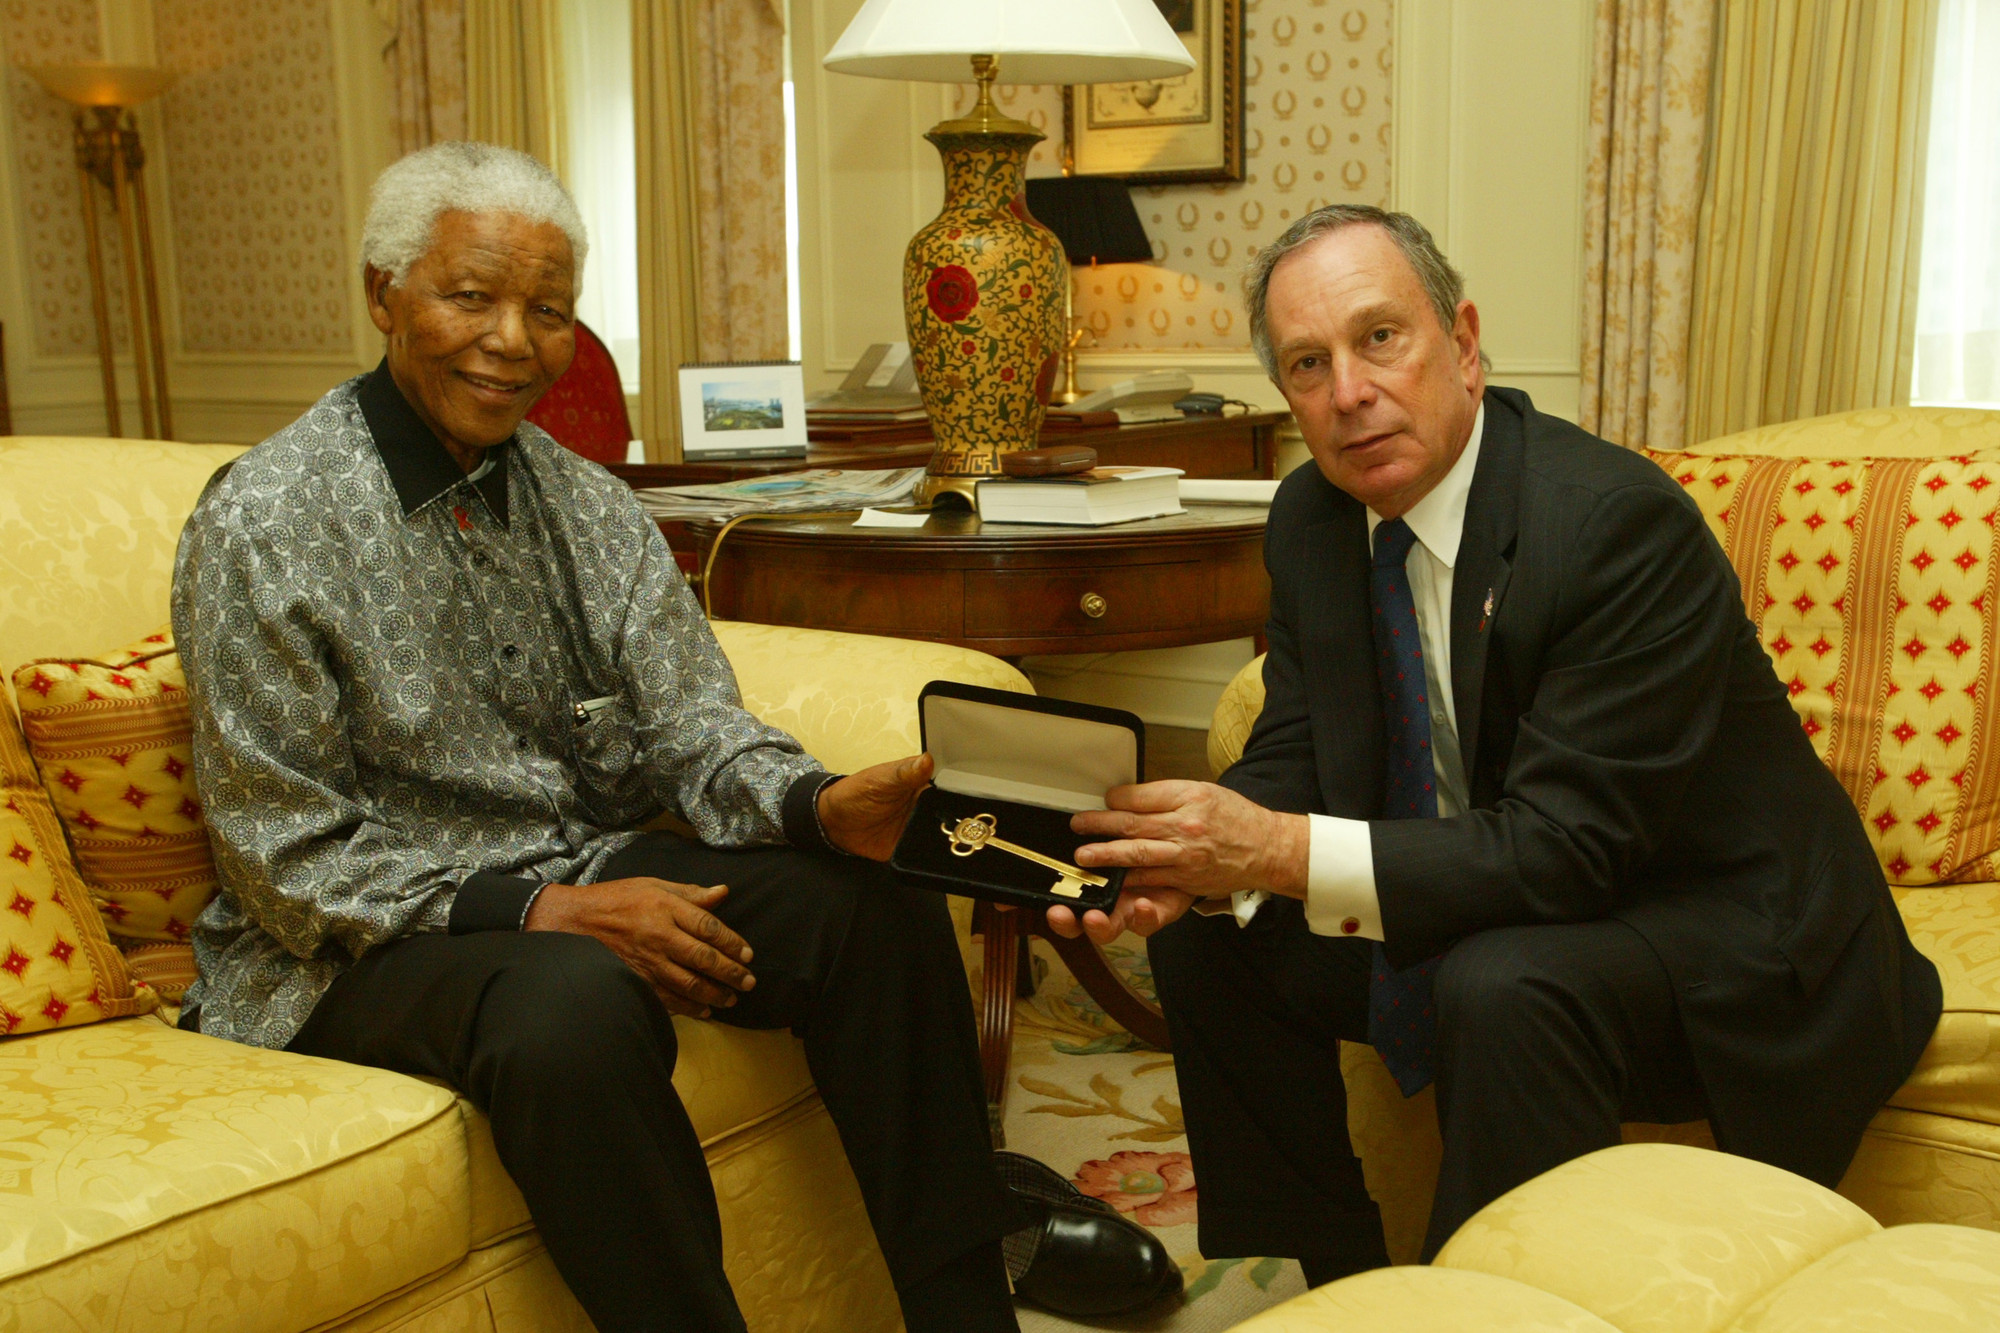 New York City Mayor Michael Bloomberg presented Mandela with a key to the city in 2005.